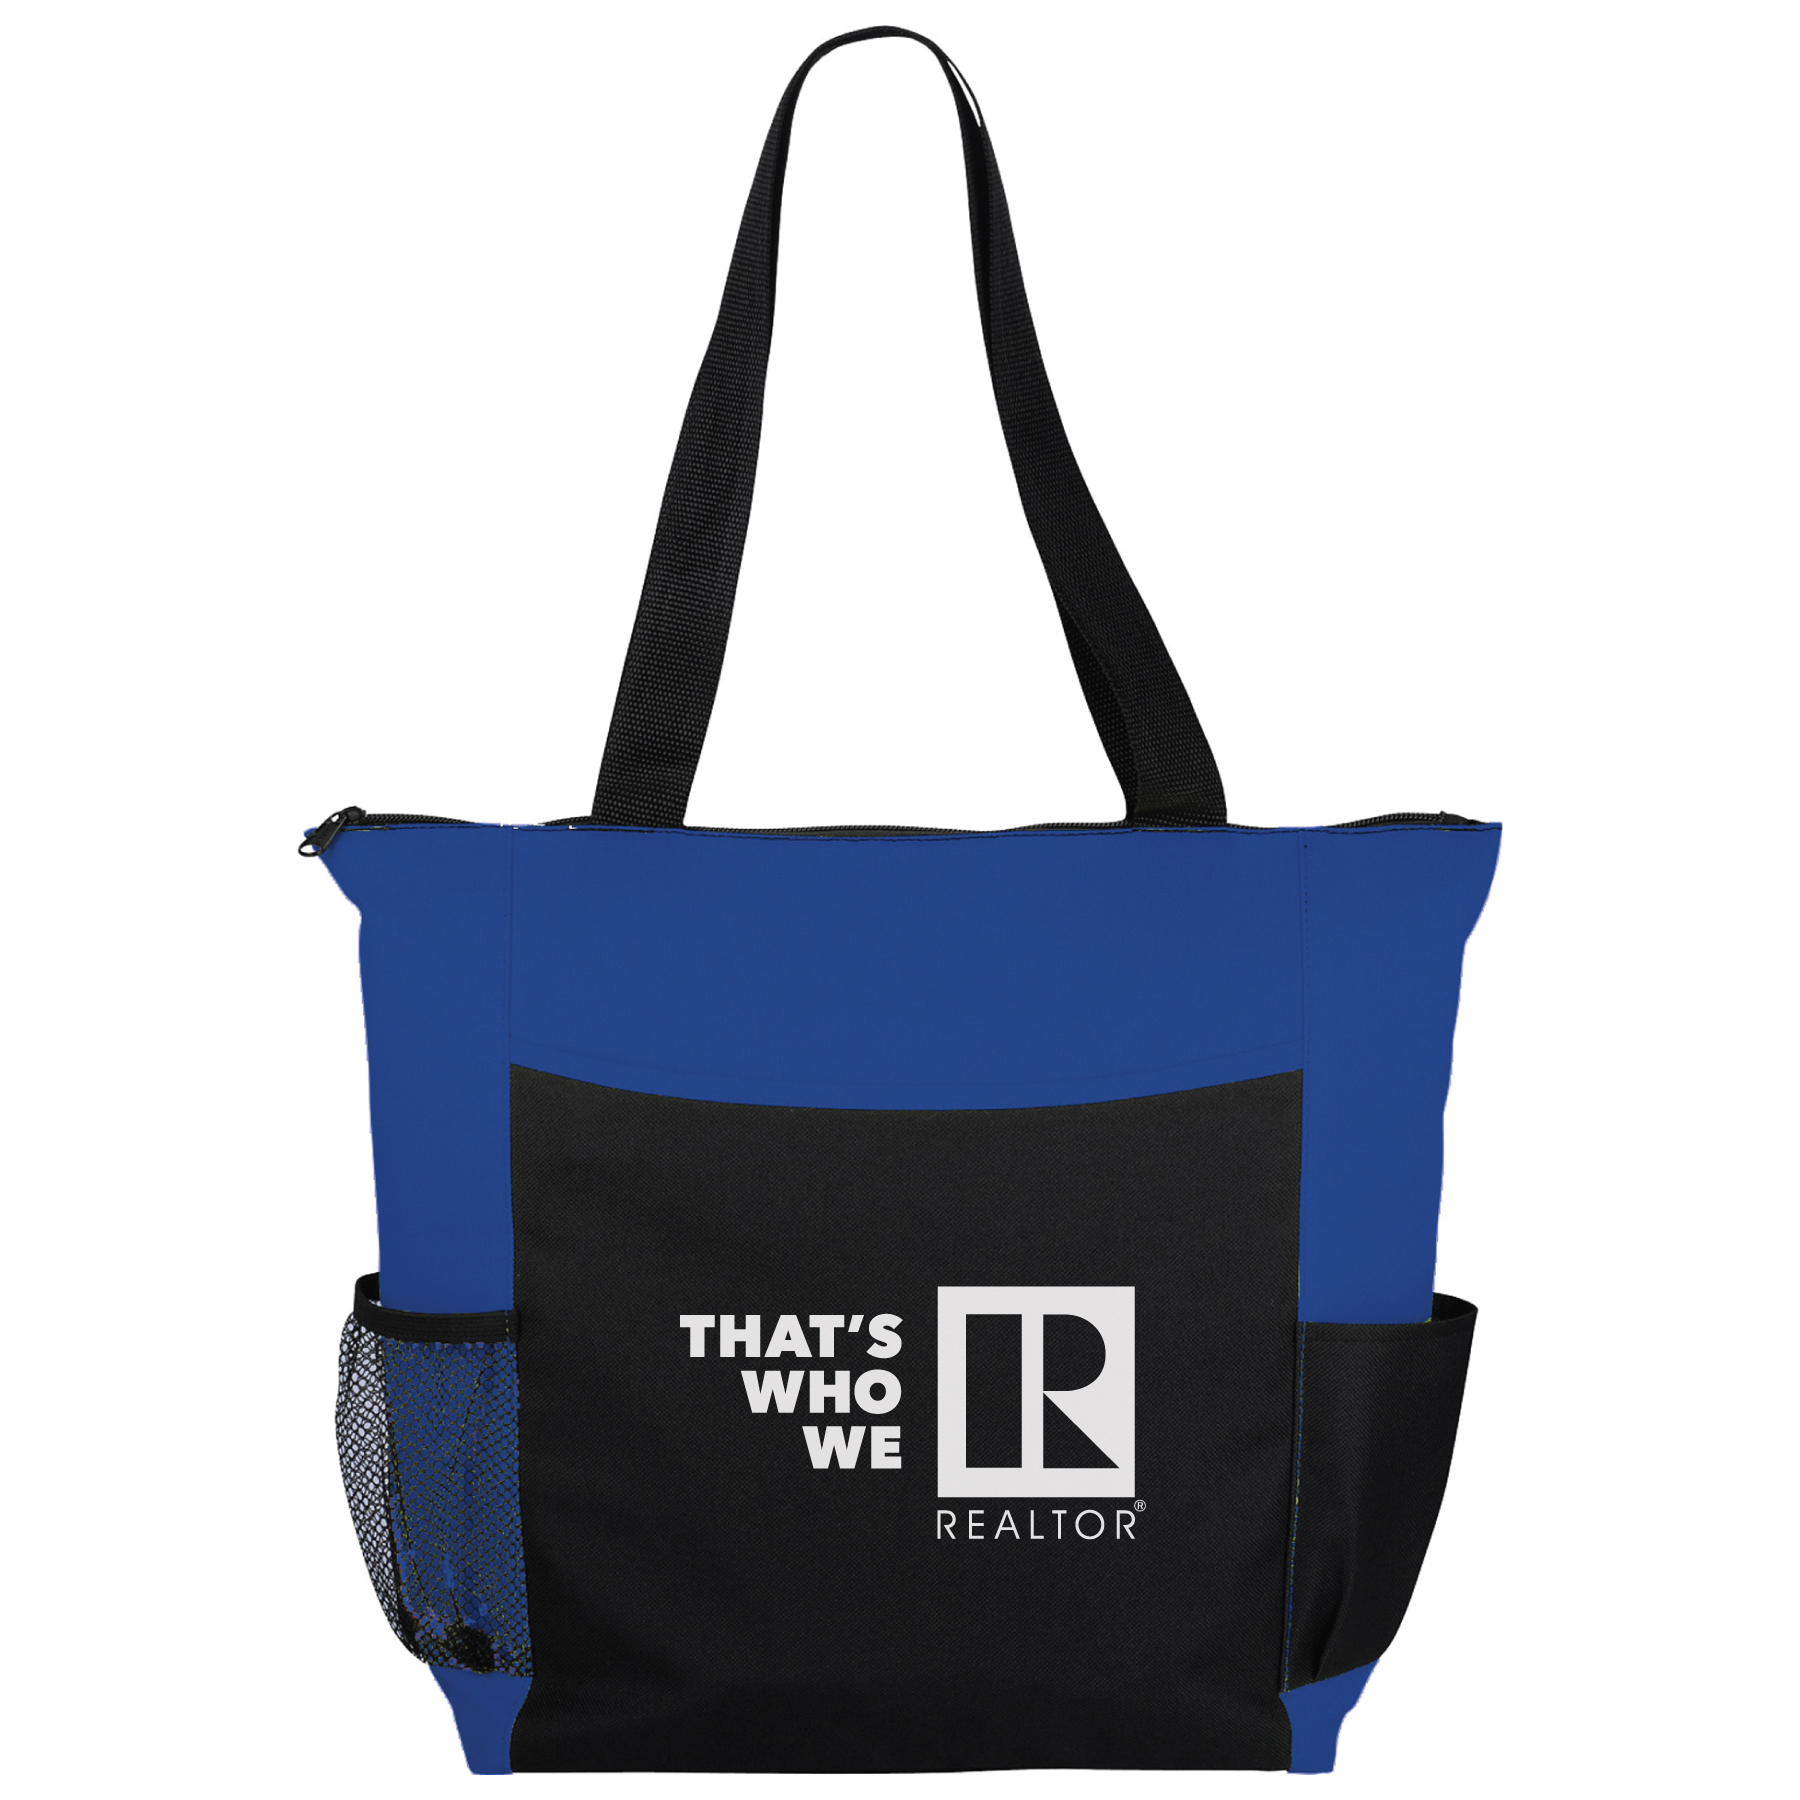 """Thats Who We R"" Canvas Bag with Zipper Closure & Bottle Holder twwr,ThatsWhoWeR,Thats,TWWR,ThatWho,ThatsWho,Twwr,Thats,Whos,We,Ares,RTS4002,Totes,Bags,Straps,Satchels,Slings,"